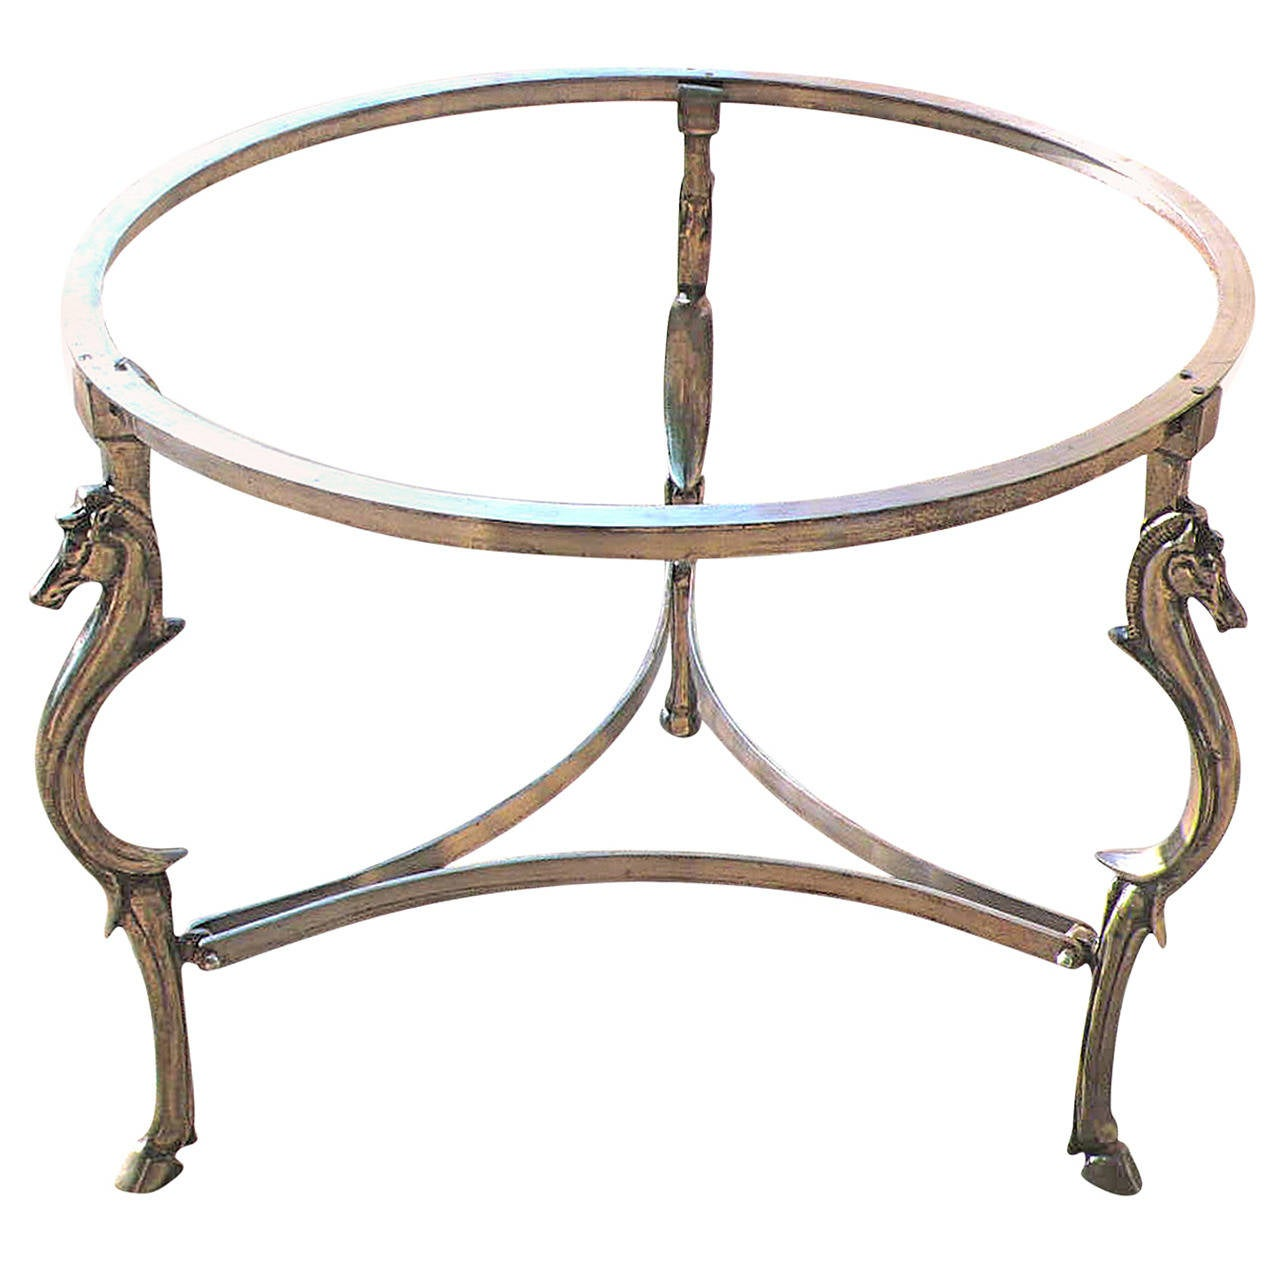 Cast Steel Center Table with Decorative Horse Heads, Attributed to Maison Jansen